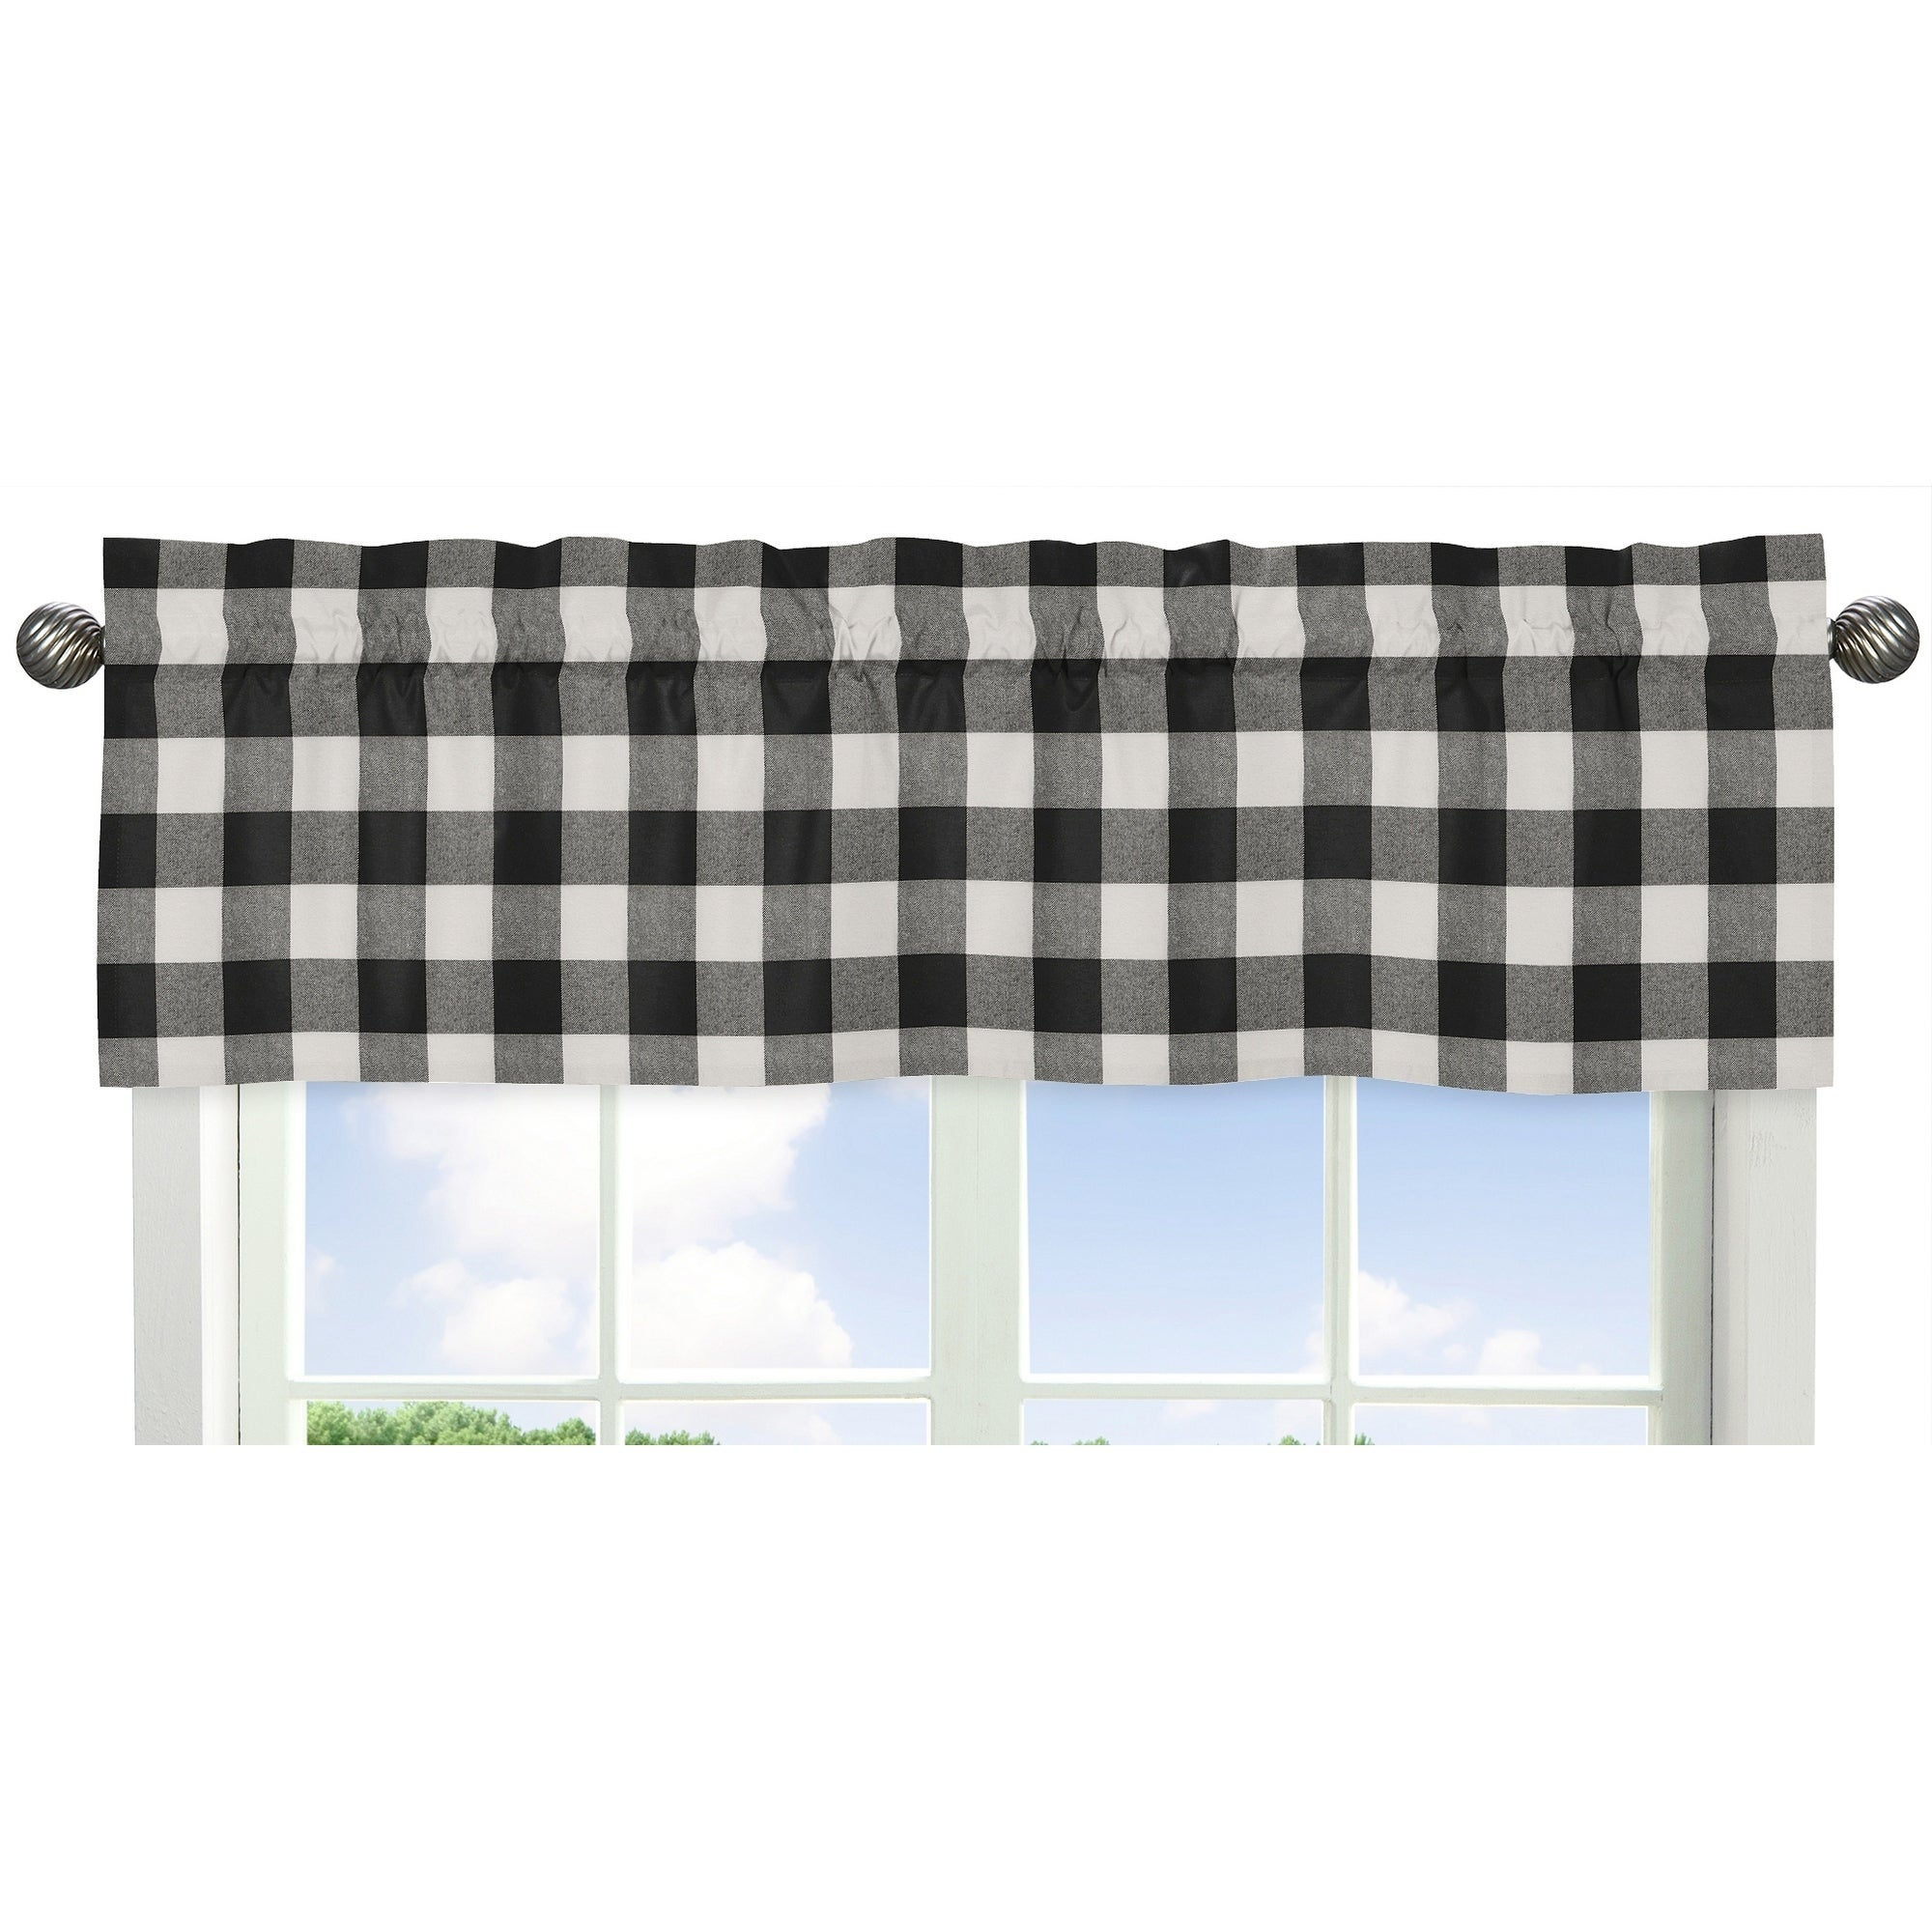 Sweet Jojo Designs Black And White Rustic Woodland Flannel Buffalo Plaid Check Collection Window Curtain Valance Pertaining To Grandin Curtain Valances In Black (View 2 of 20)